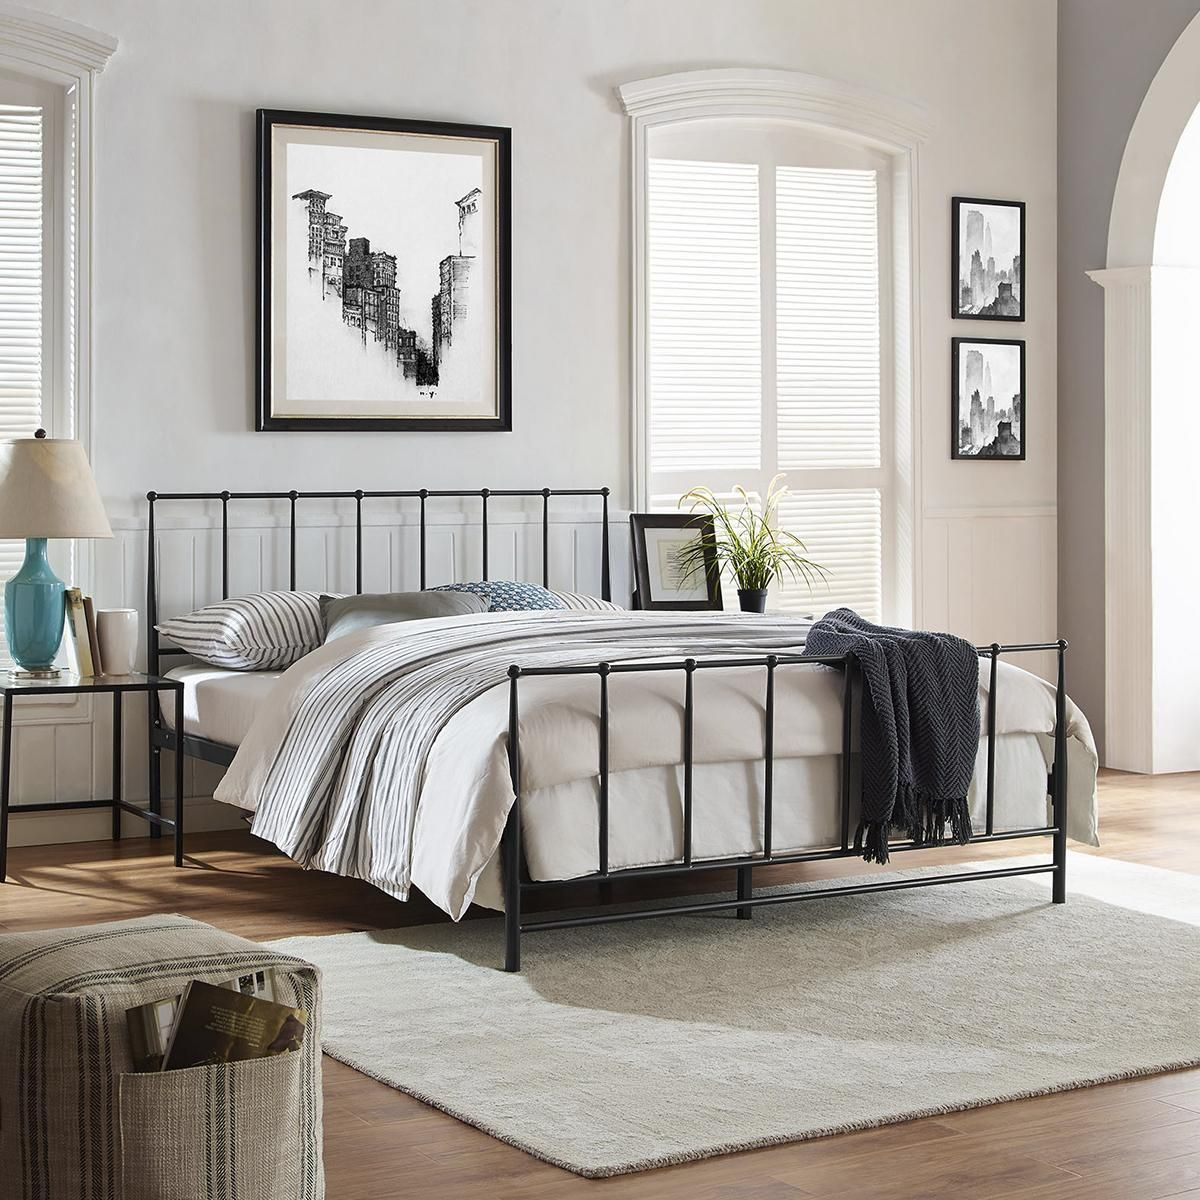 Product main image master bedroom in pinterest bed